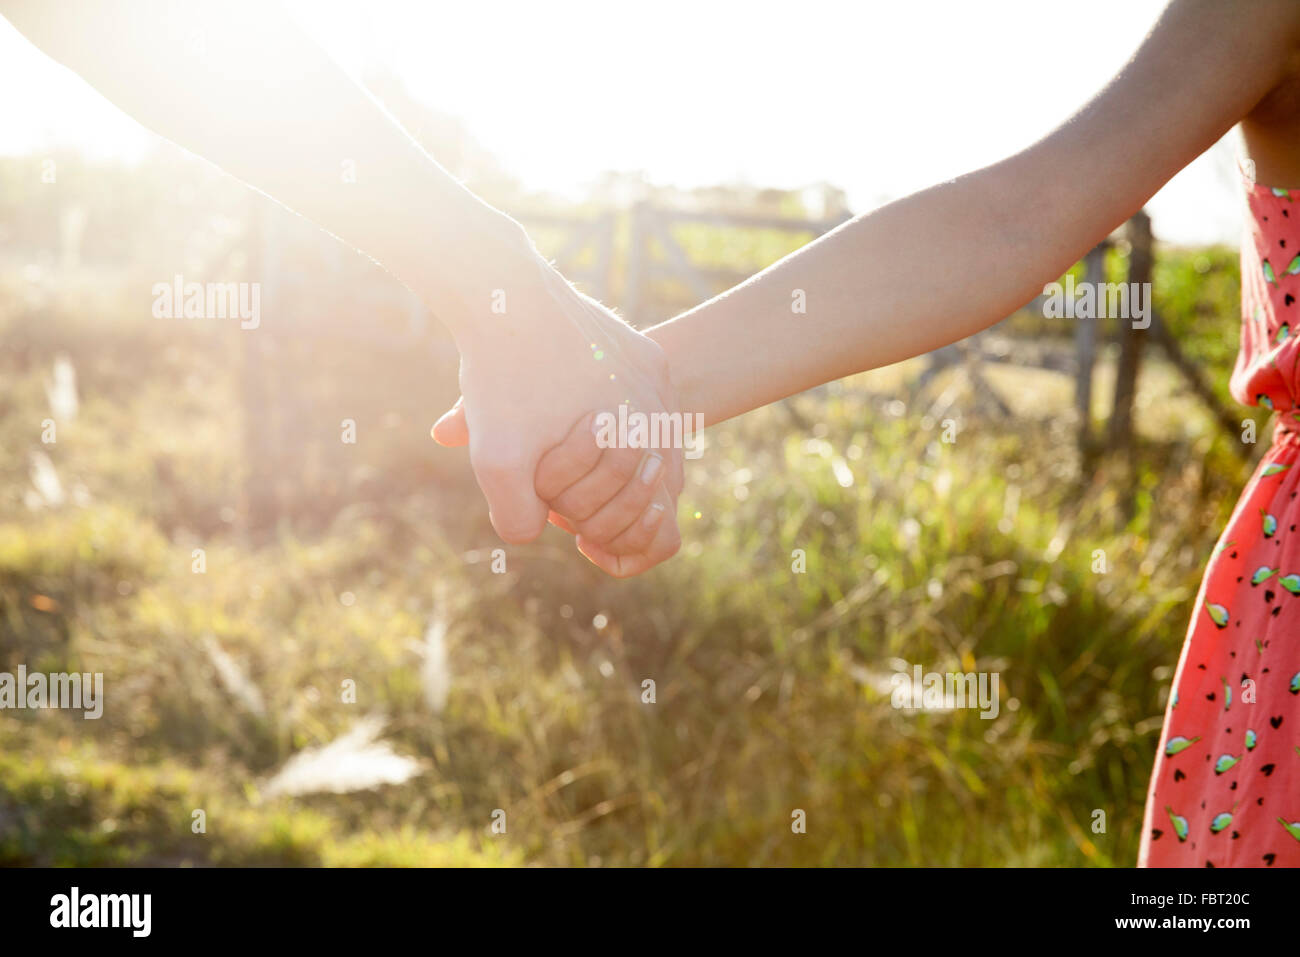 Couple holding hands, close-up - Stock Image